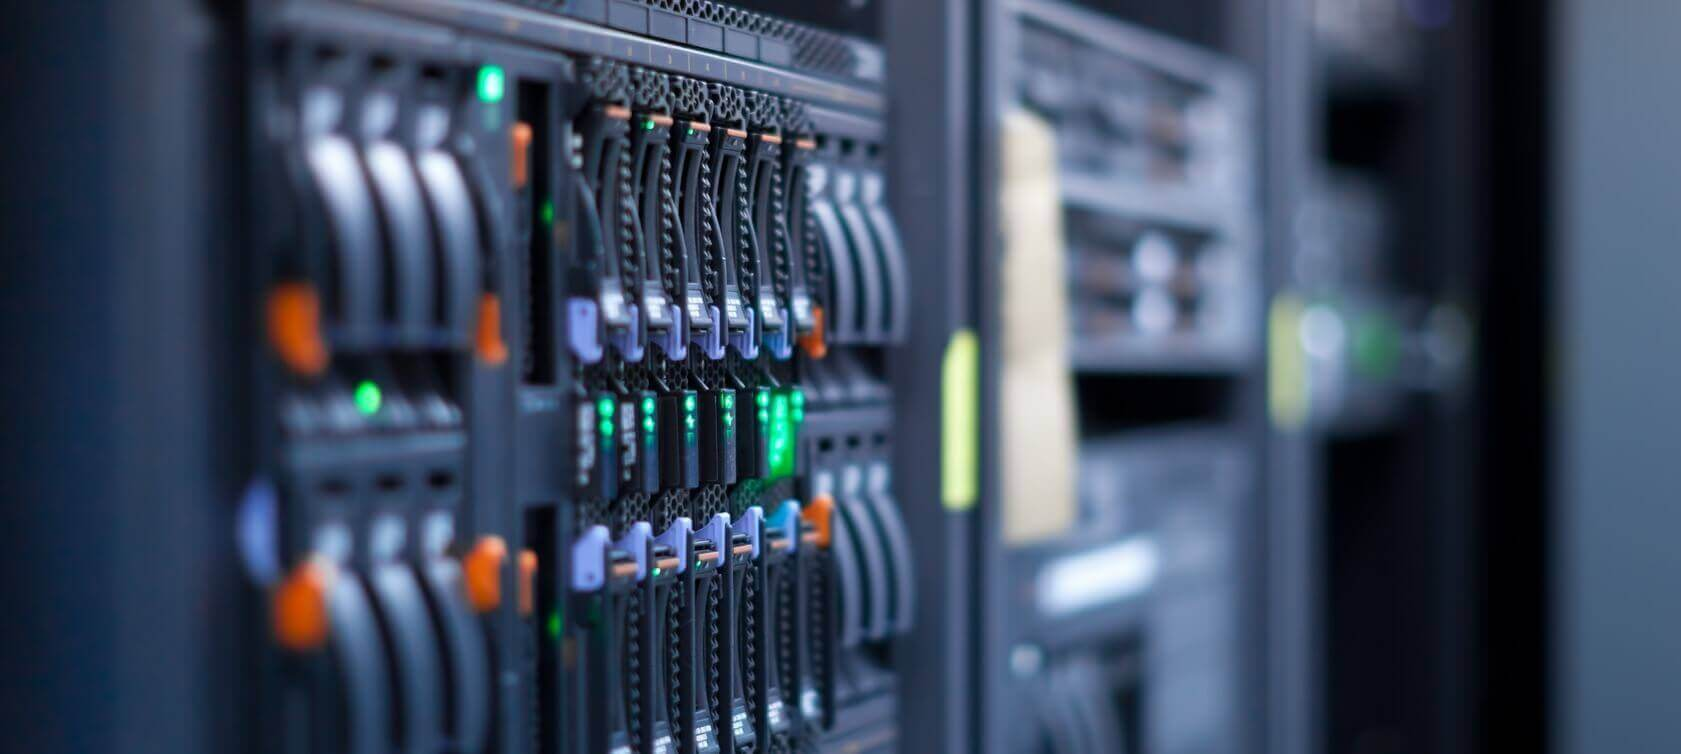 What Are Web Servers and Why Are They Needed?